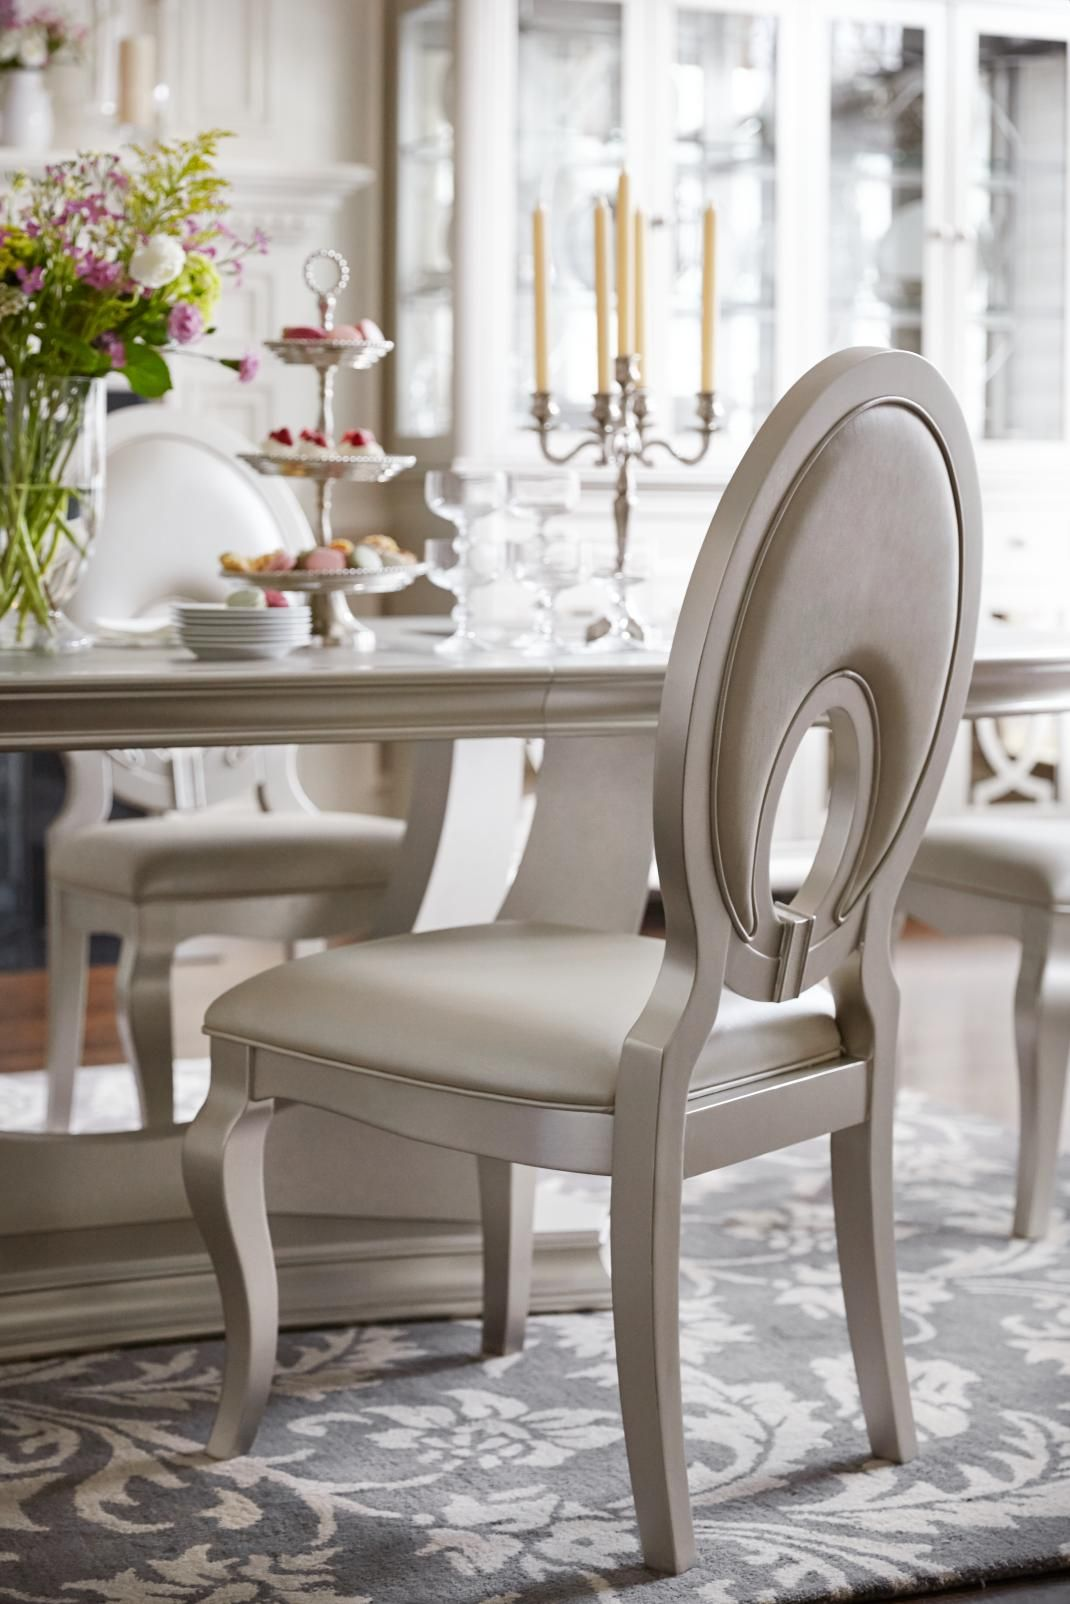 We are LOVING this Allegro chair. In the right light it changes color from gold & We are LOVING this Allegro chair. In the right light it changes ...